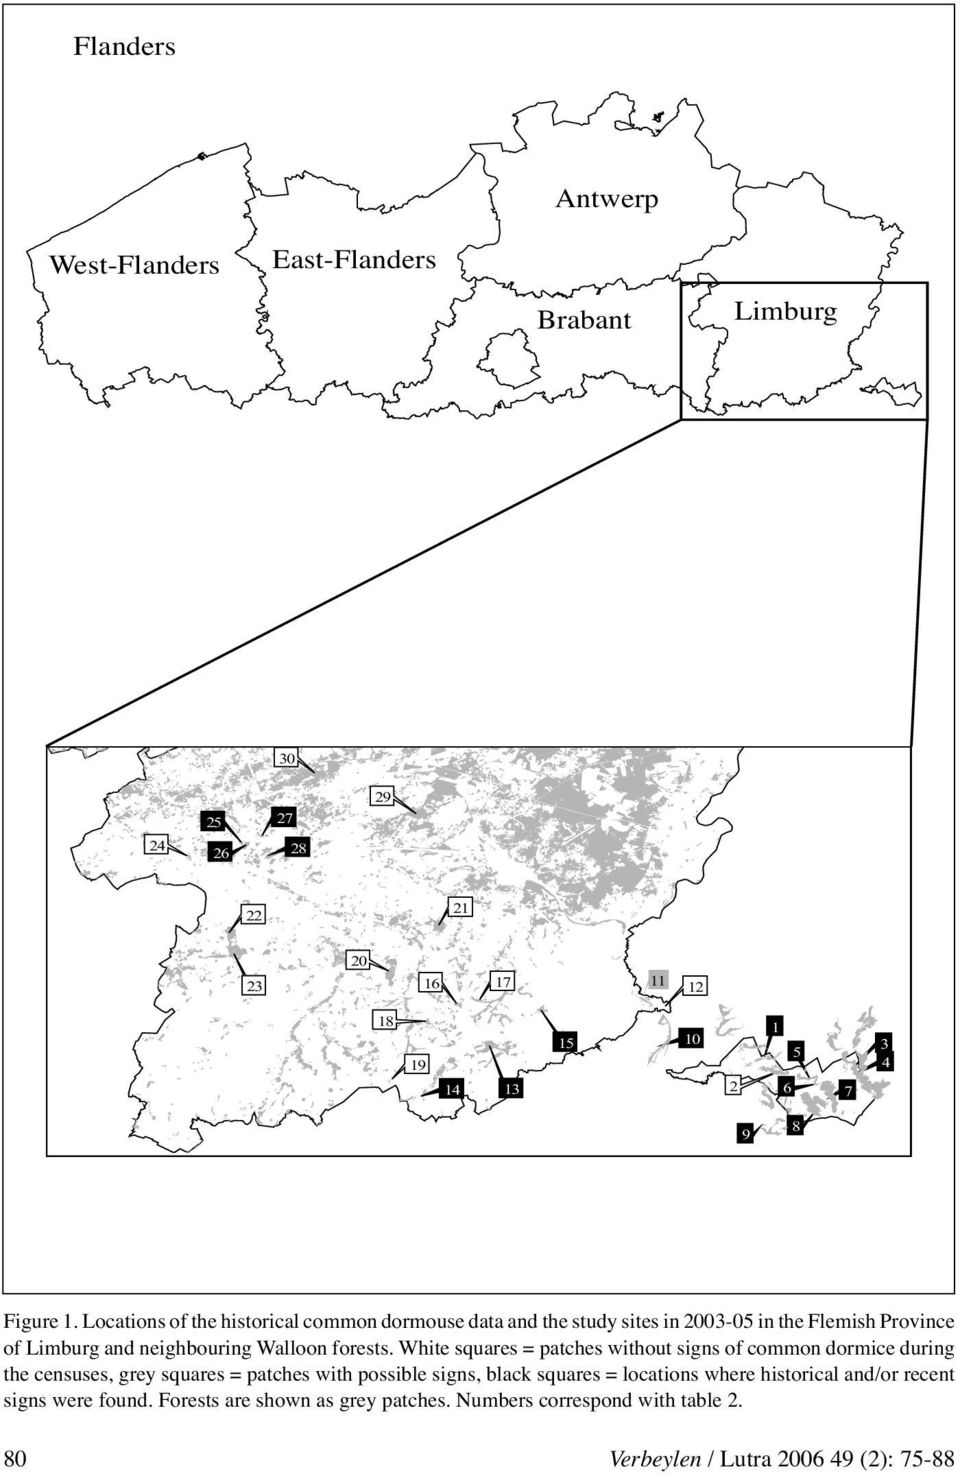 Locations of the historical common dormouse data and the study sites in 2003-05 in the Flemish Province of Limburg and neighbouring Walloon